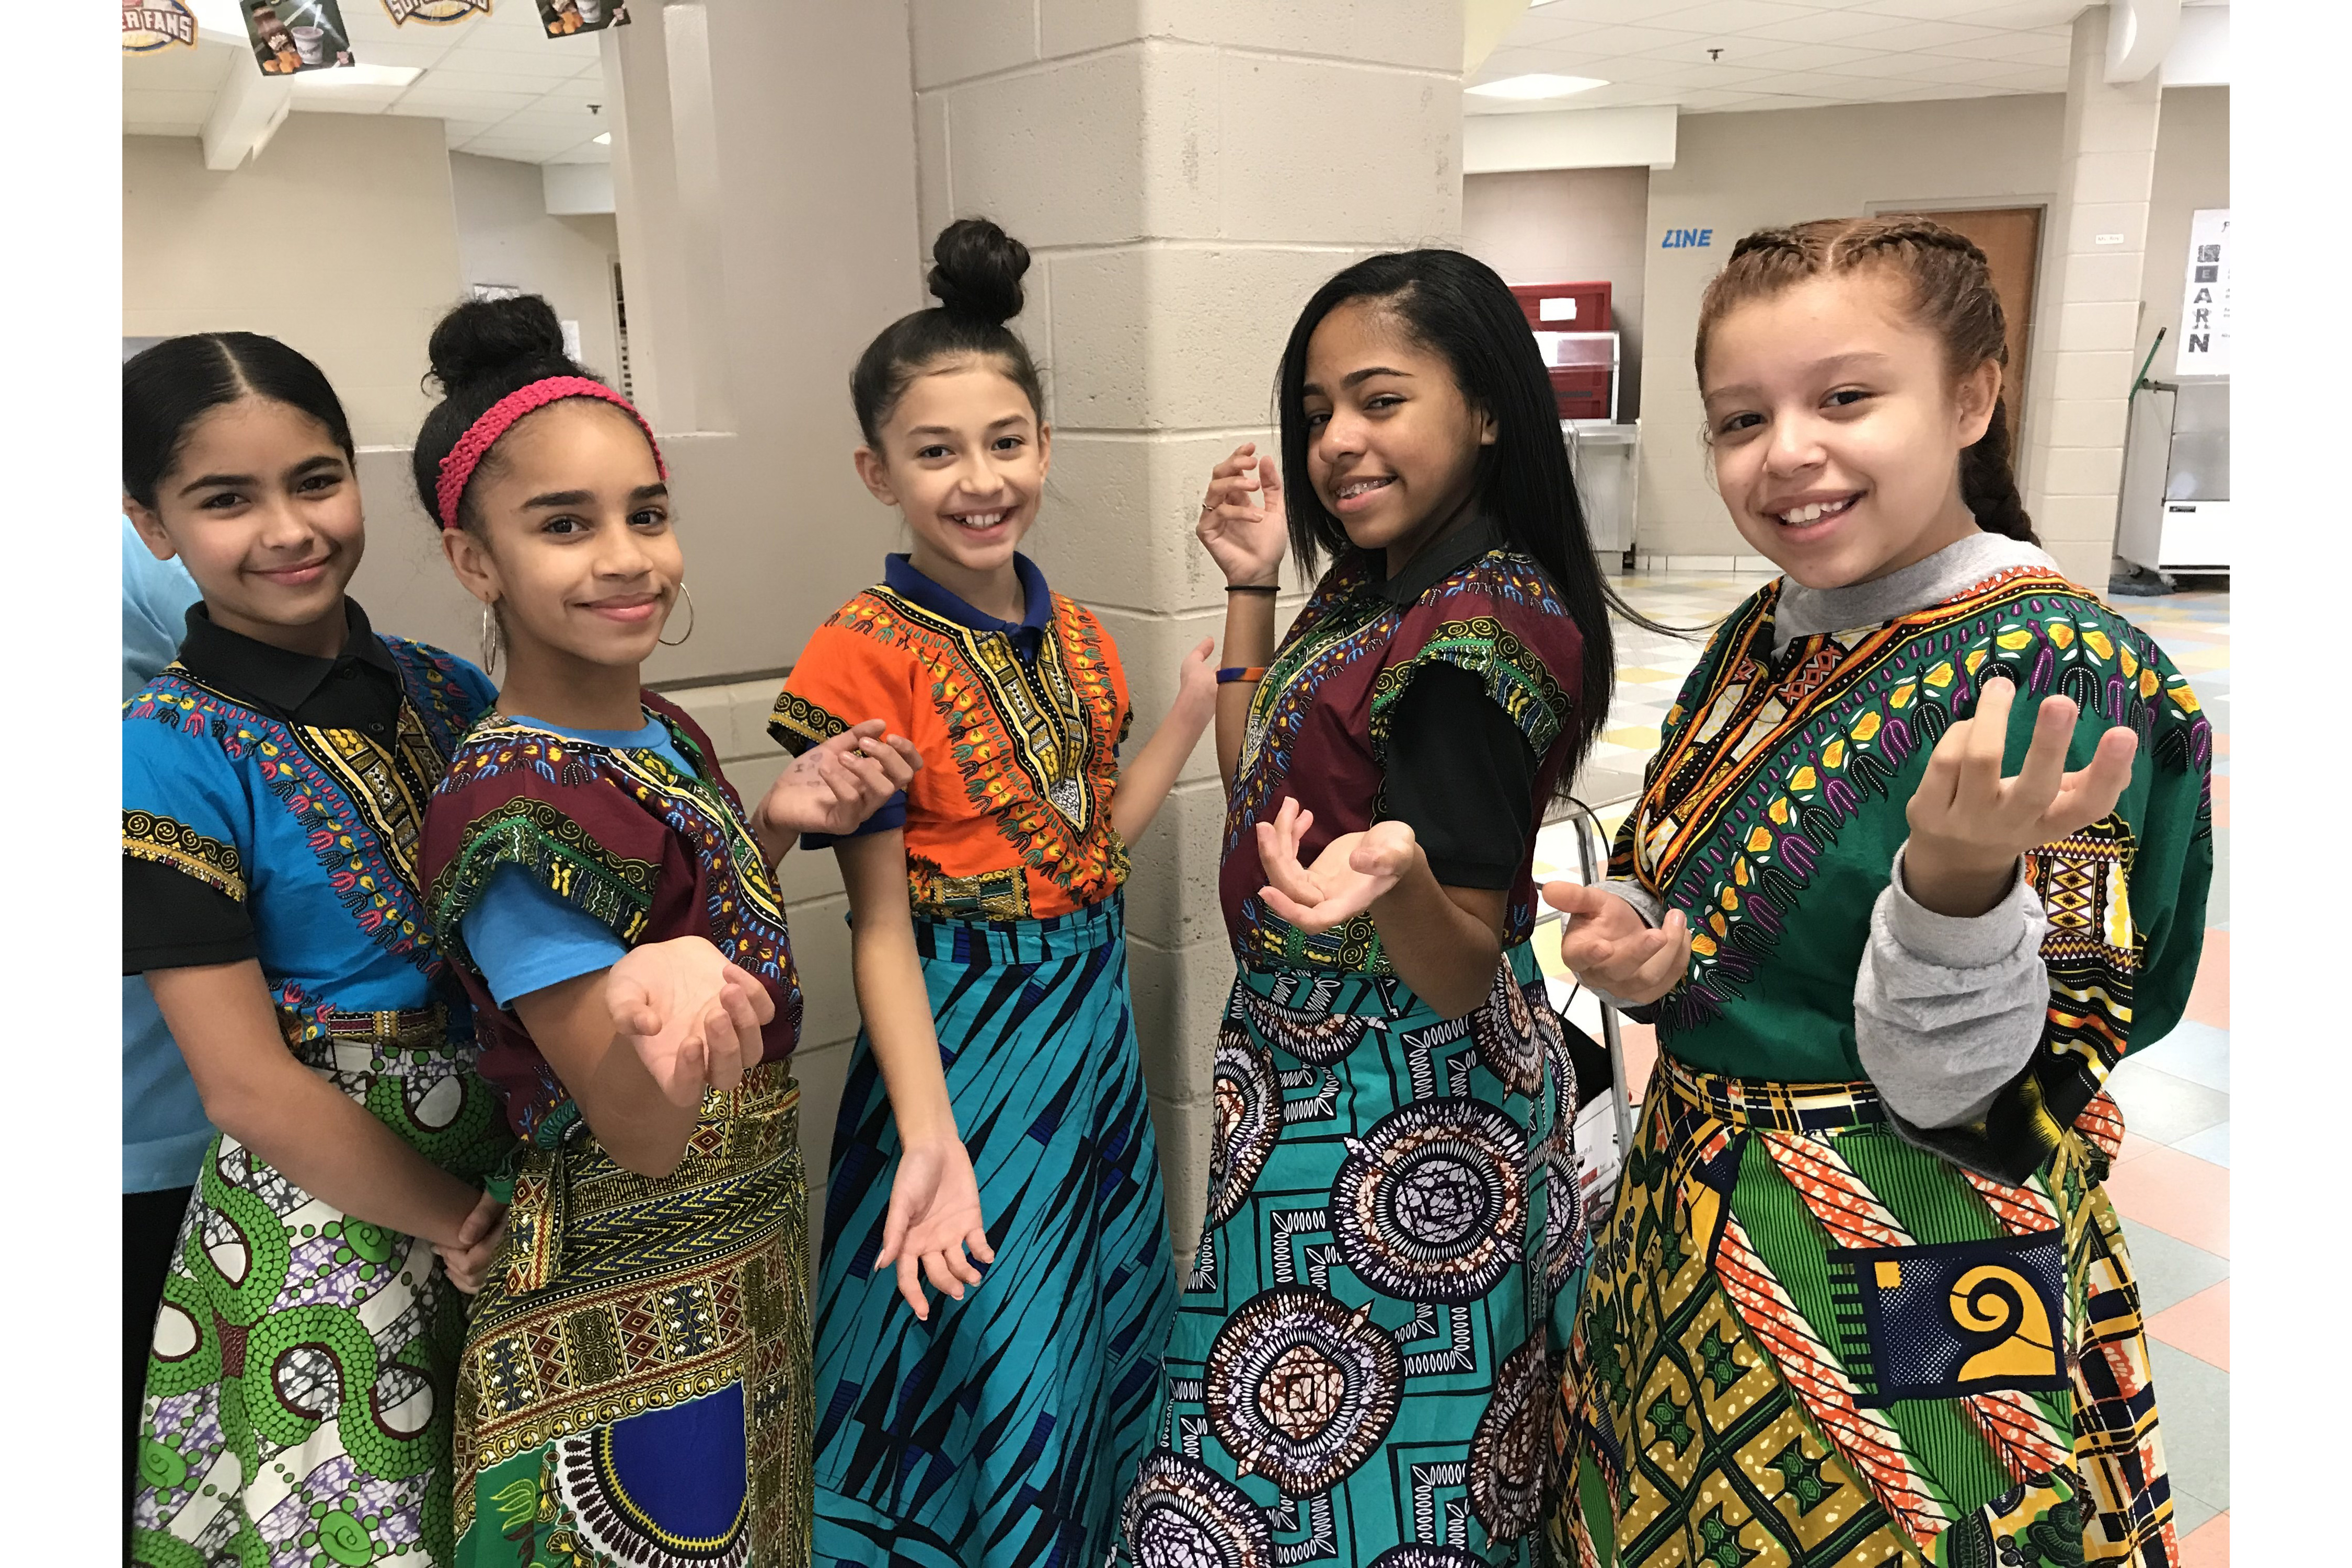 Female students in traditional dresses